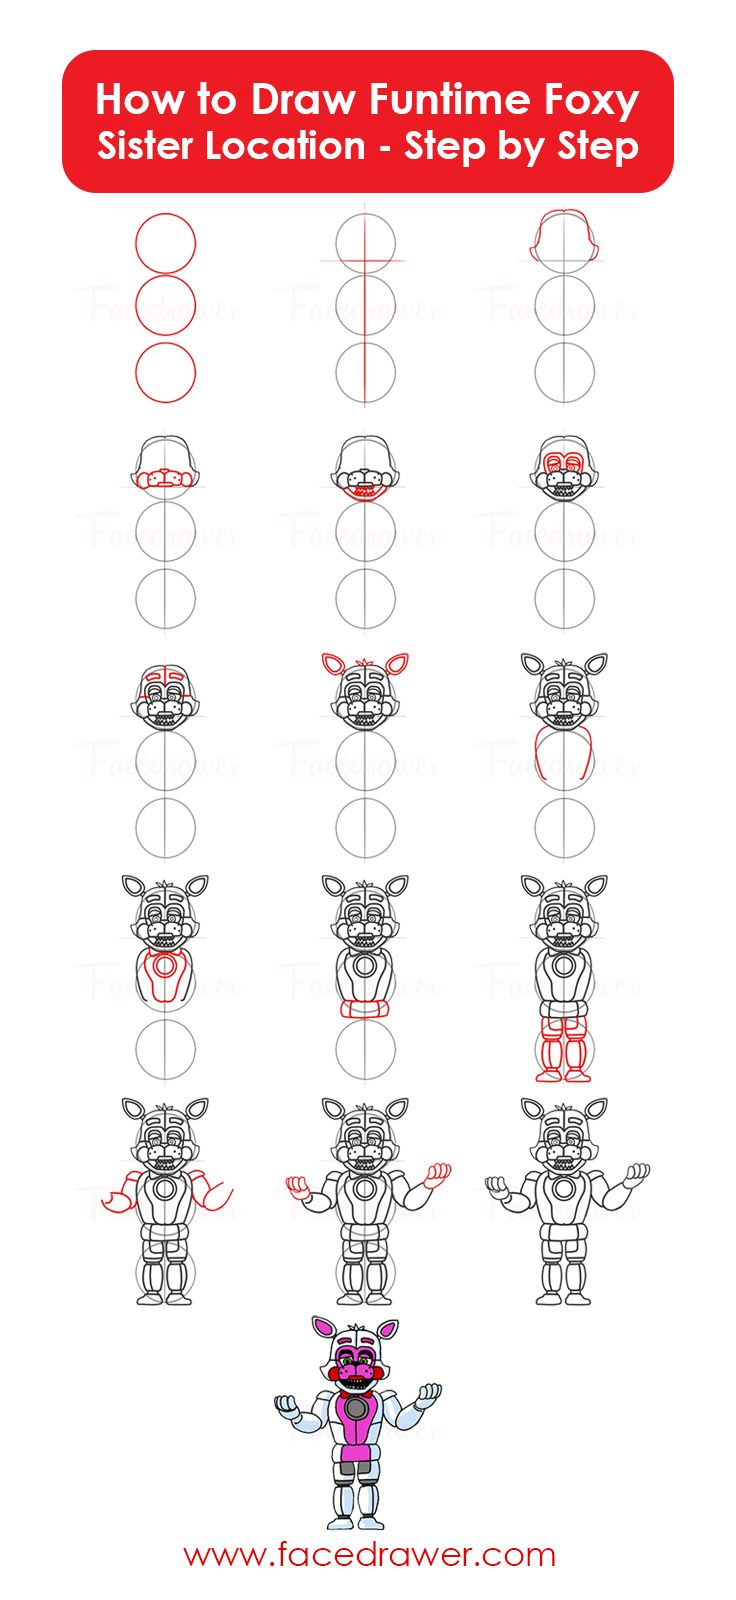 How to draw fnaf freddy steps - Learn How To Draw Easy Funtime Foxy From Fnaf Sister Location Step By Step